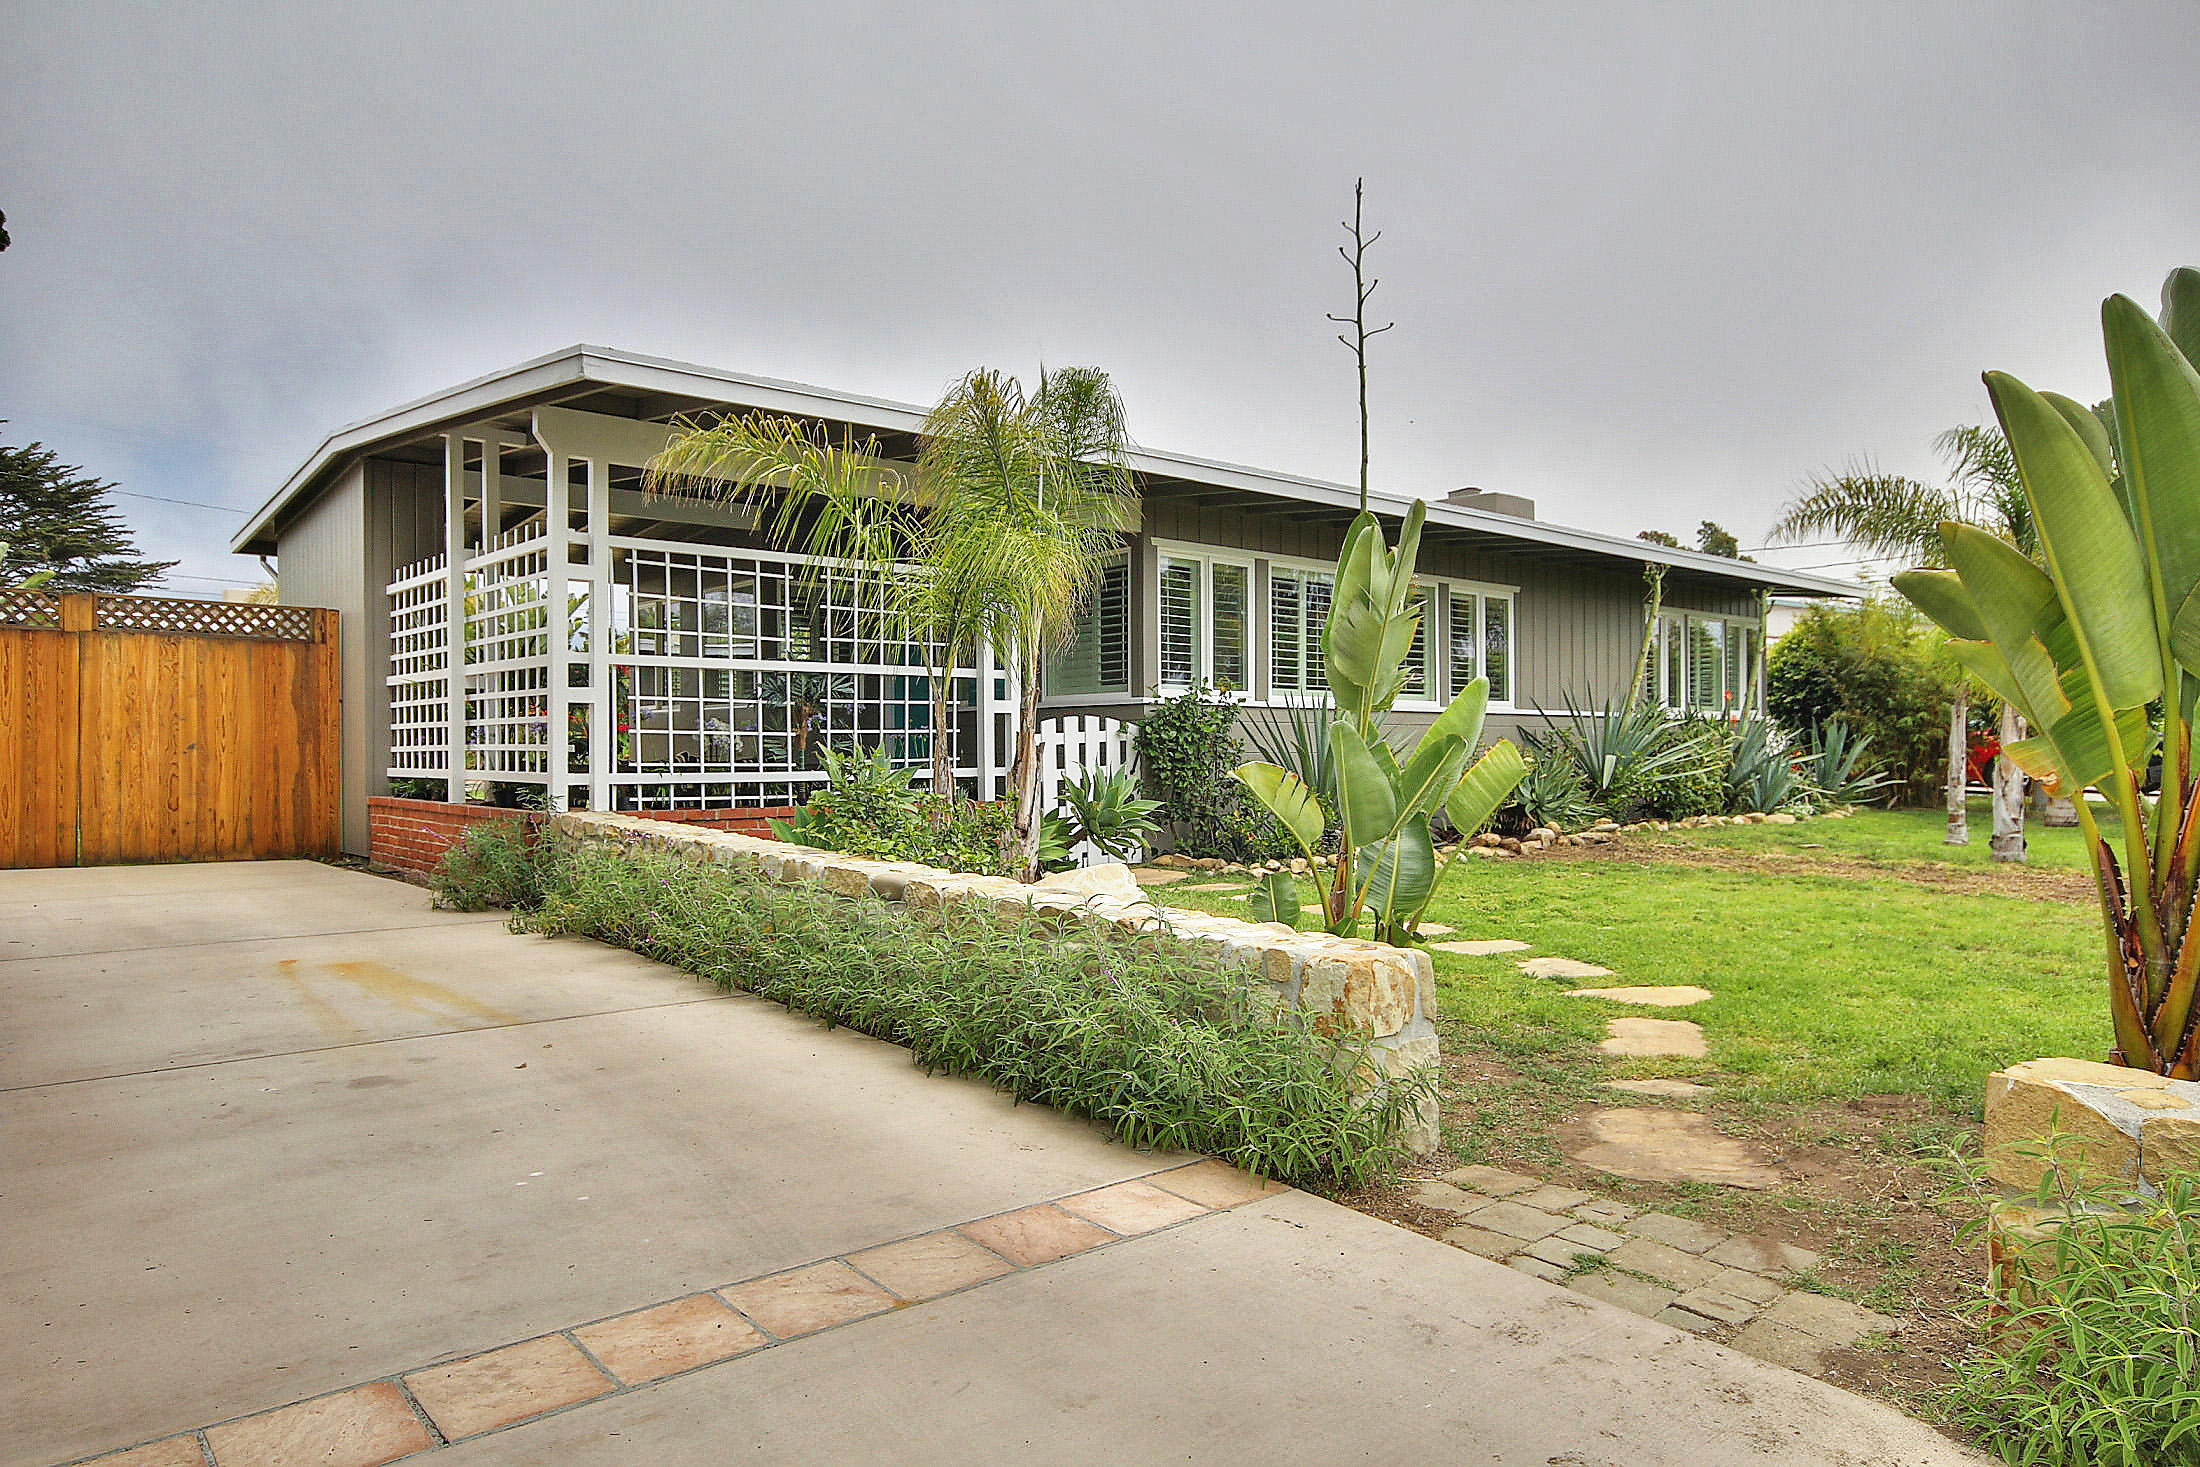 Property photo for 5552 Calle Arena Carpinteria, California 93013 - 15-2213